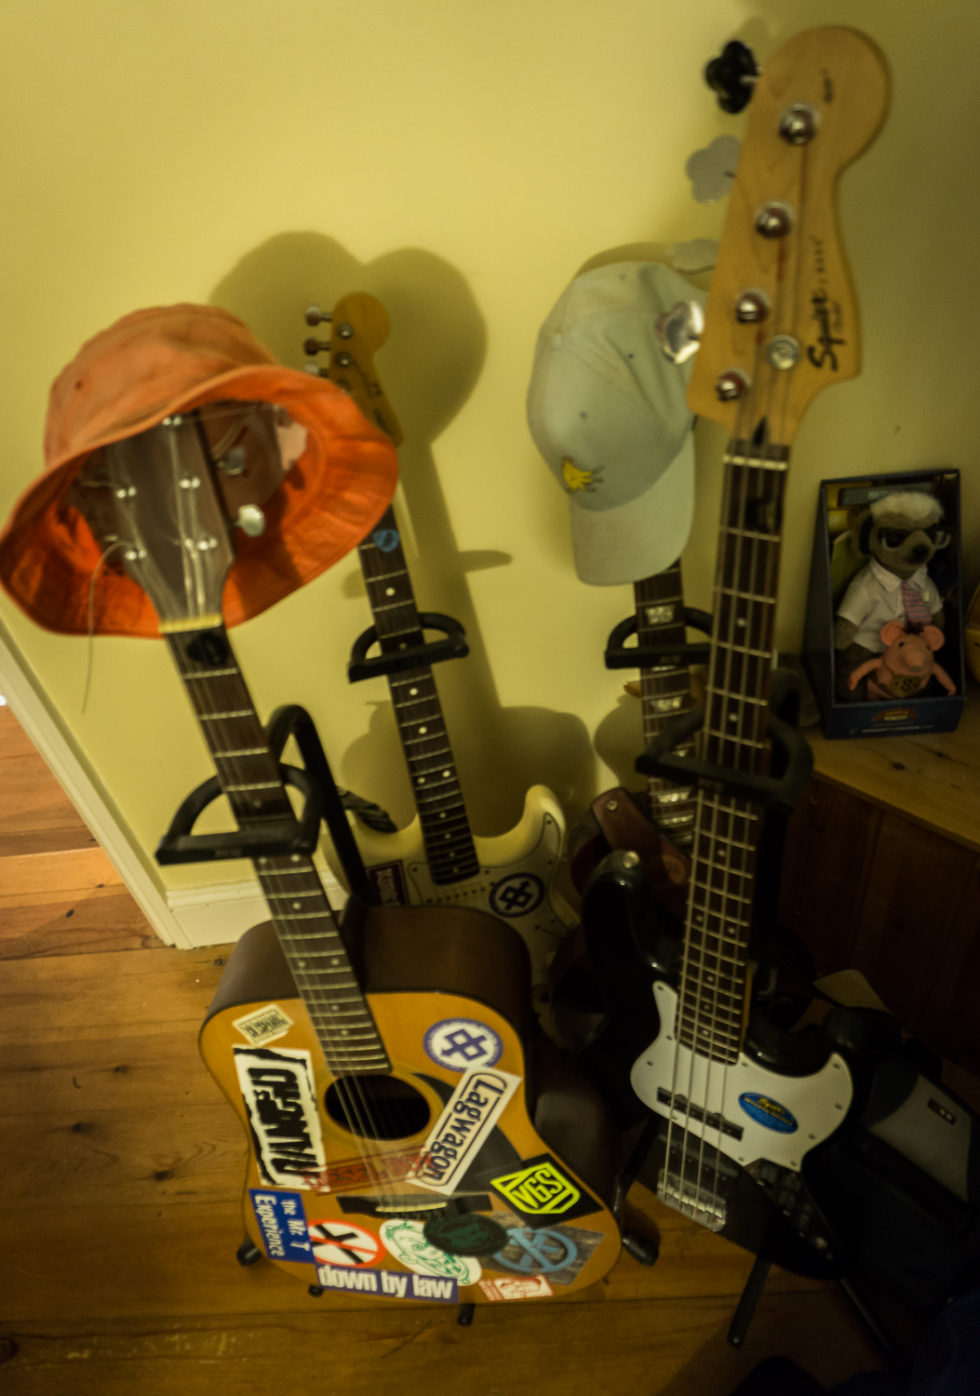 154-365v3 – Guitars With Hats